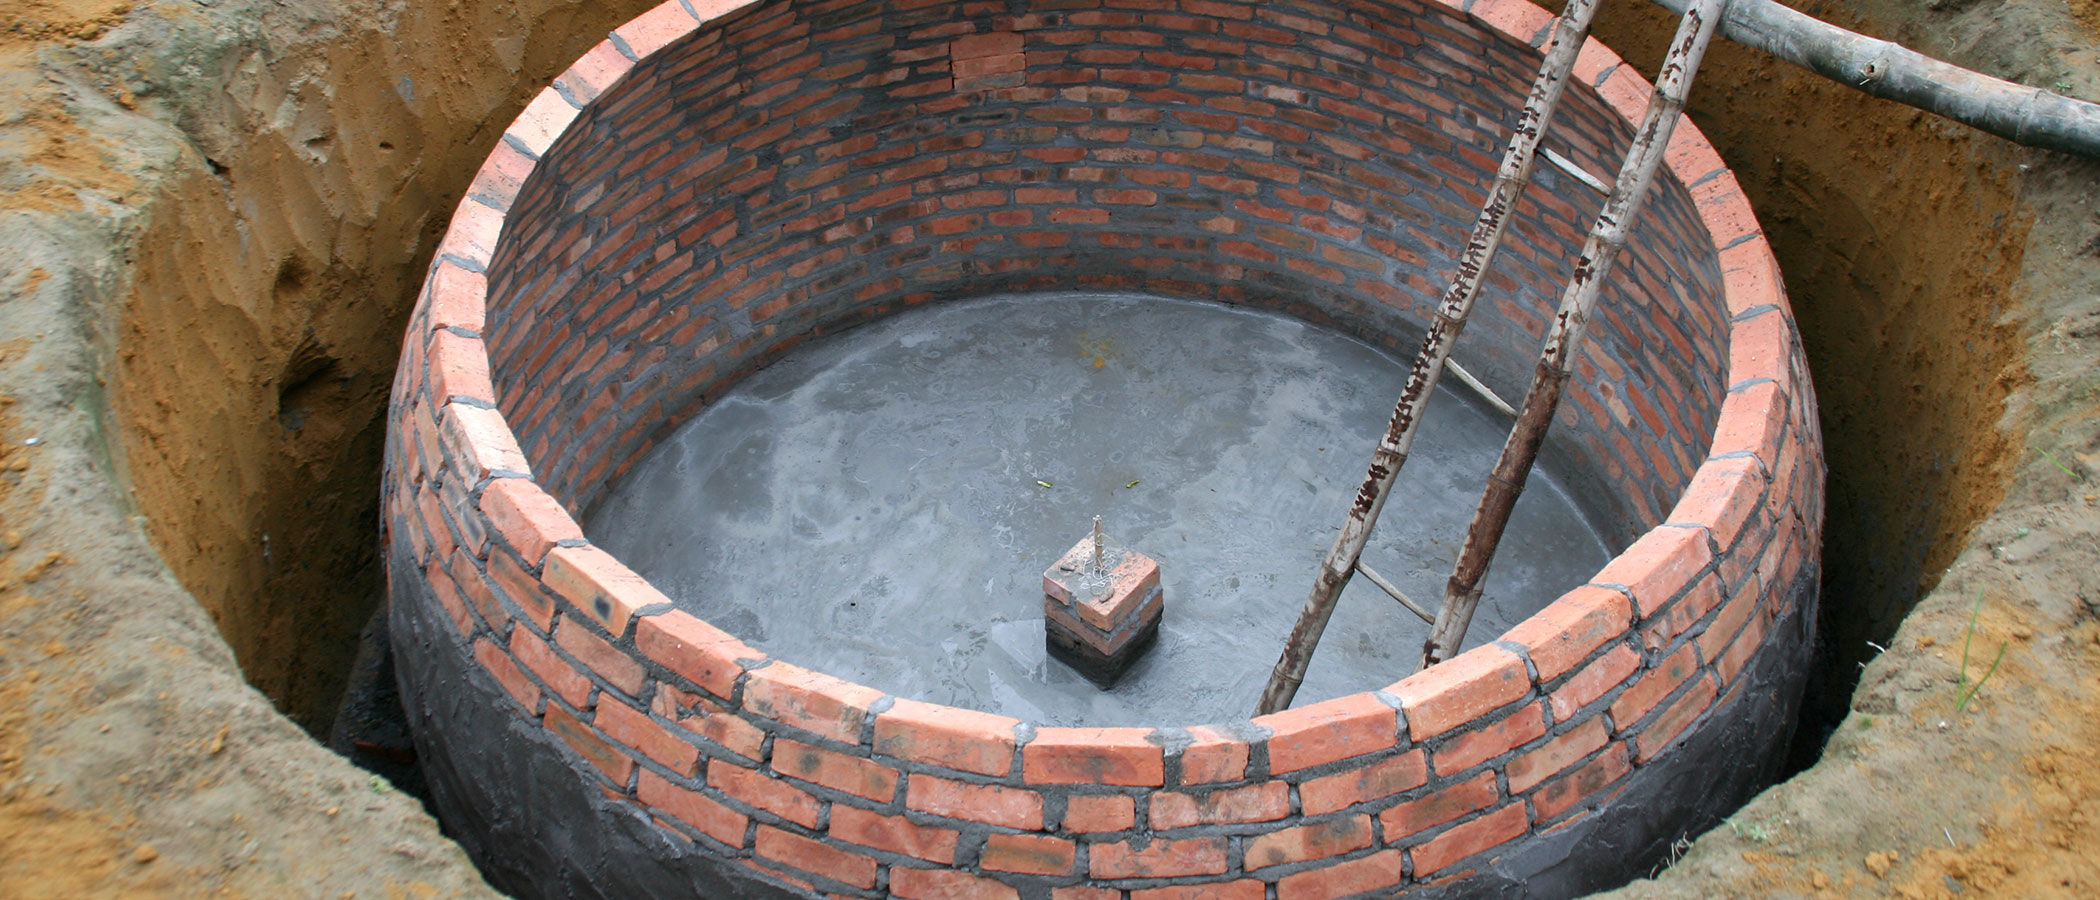 Small-scale biogas plant made of brick and cement then buried below ground.